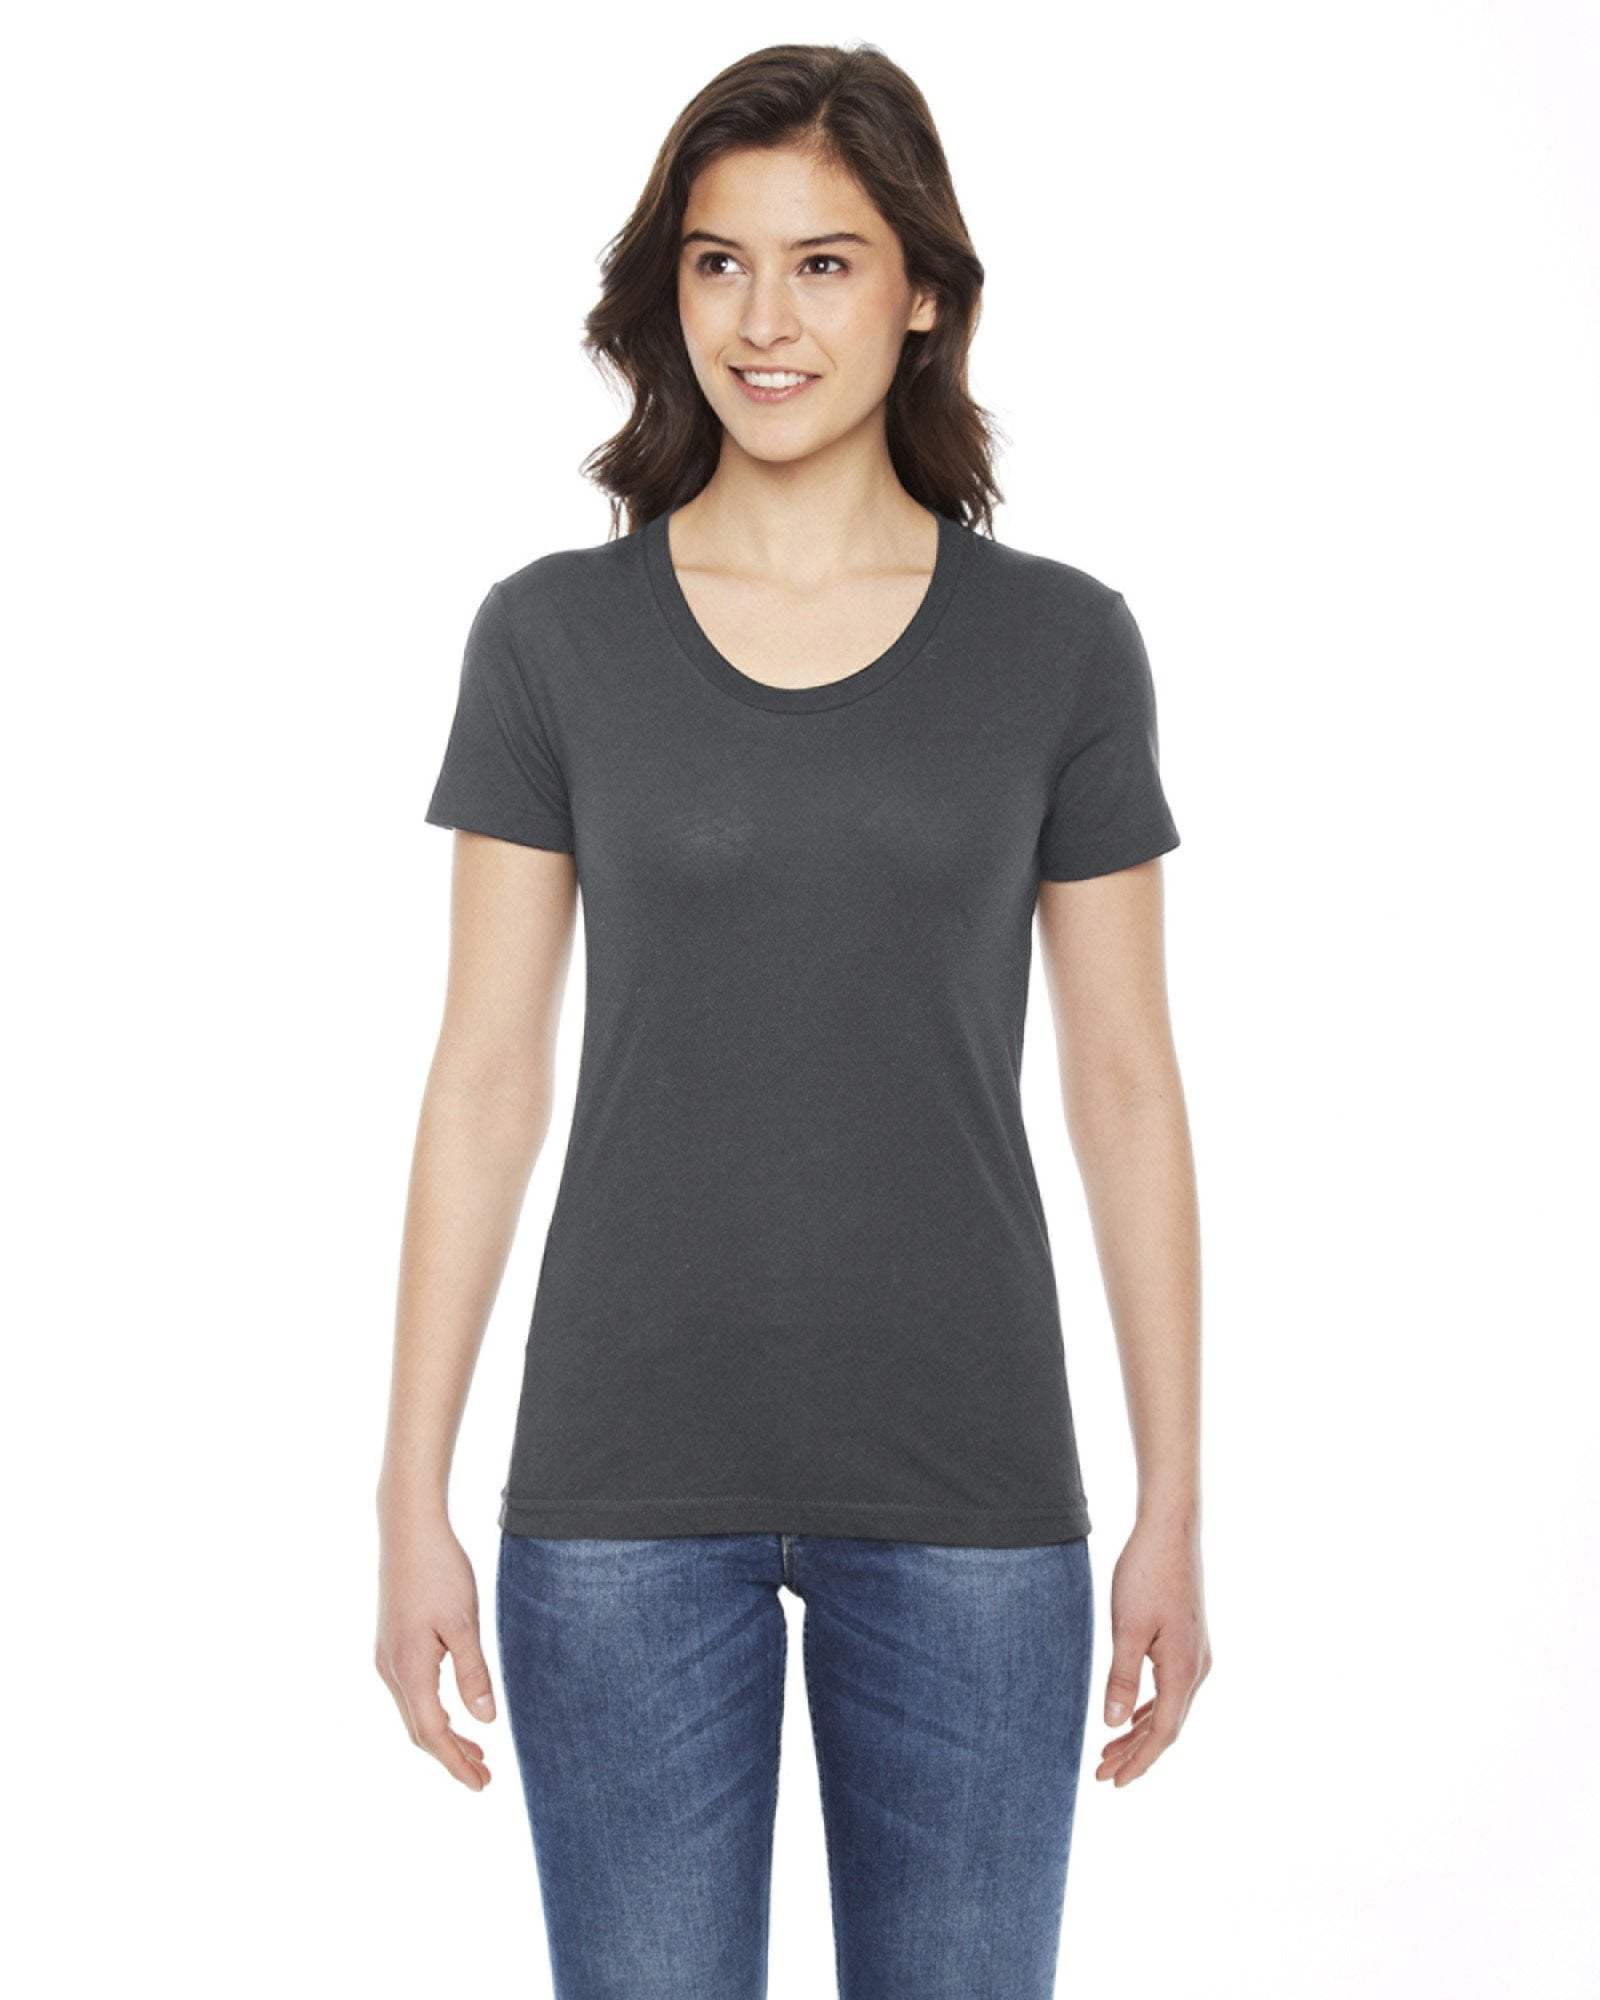 American Apparel - BB301 - Ladies' Poly-Cotton Short-Sleeve Crewneck